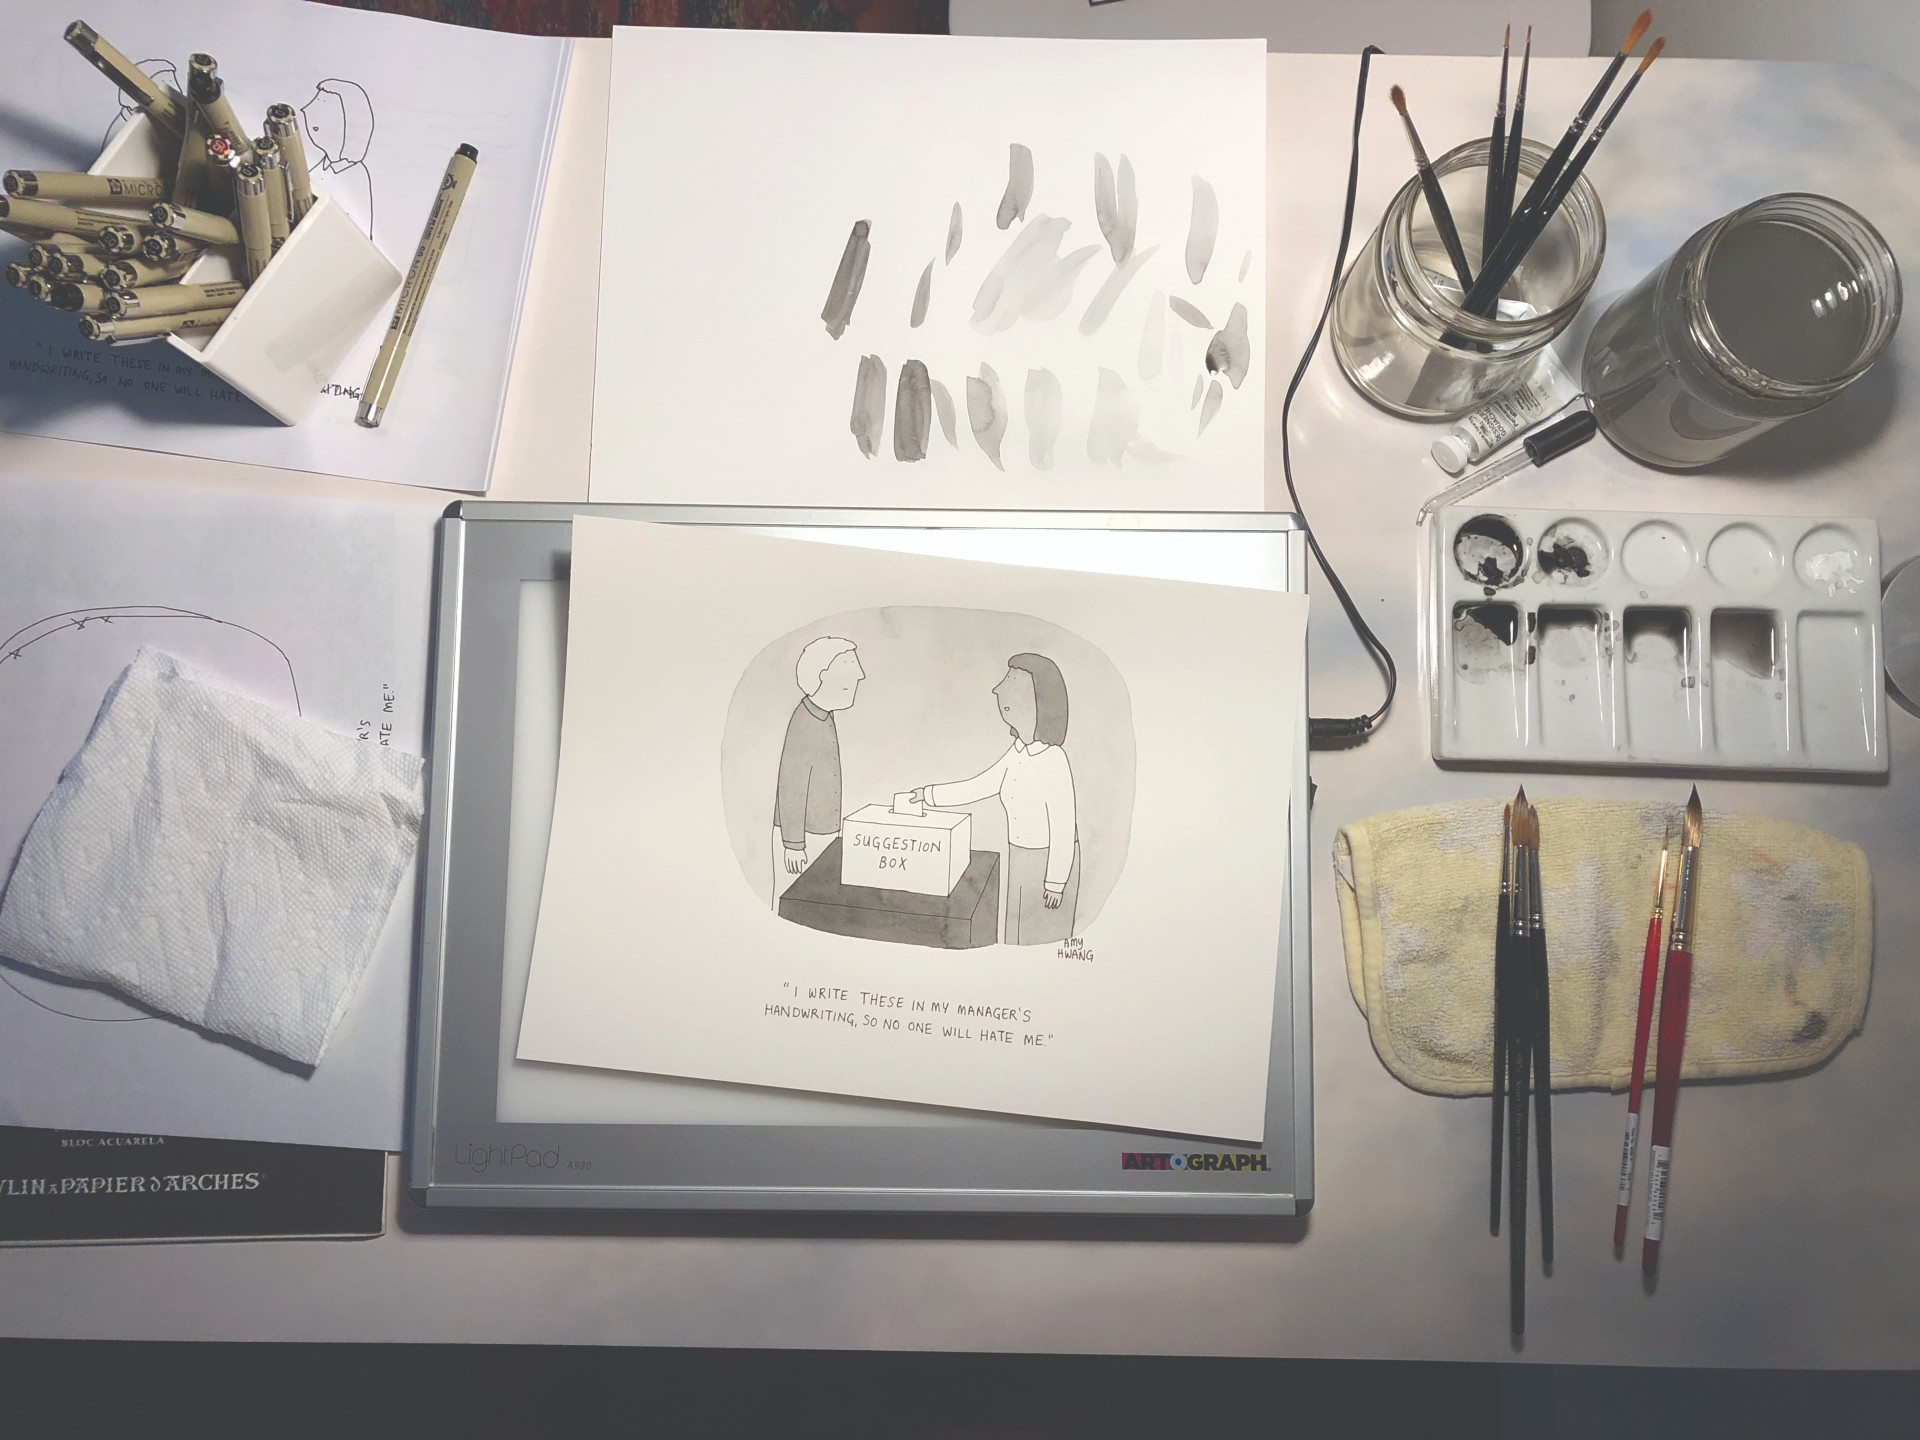 Photo of Hwang's workspace, with an in-progress watercolor cartoon surrounded by watercolor materials